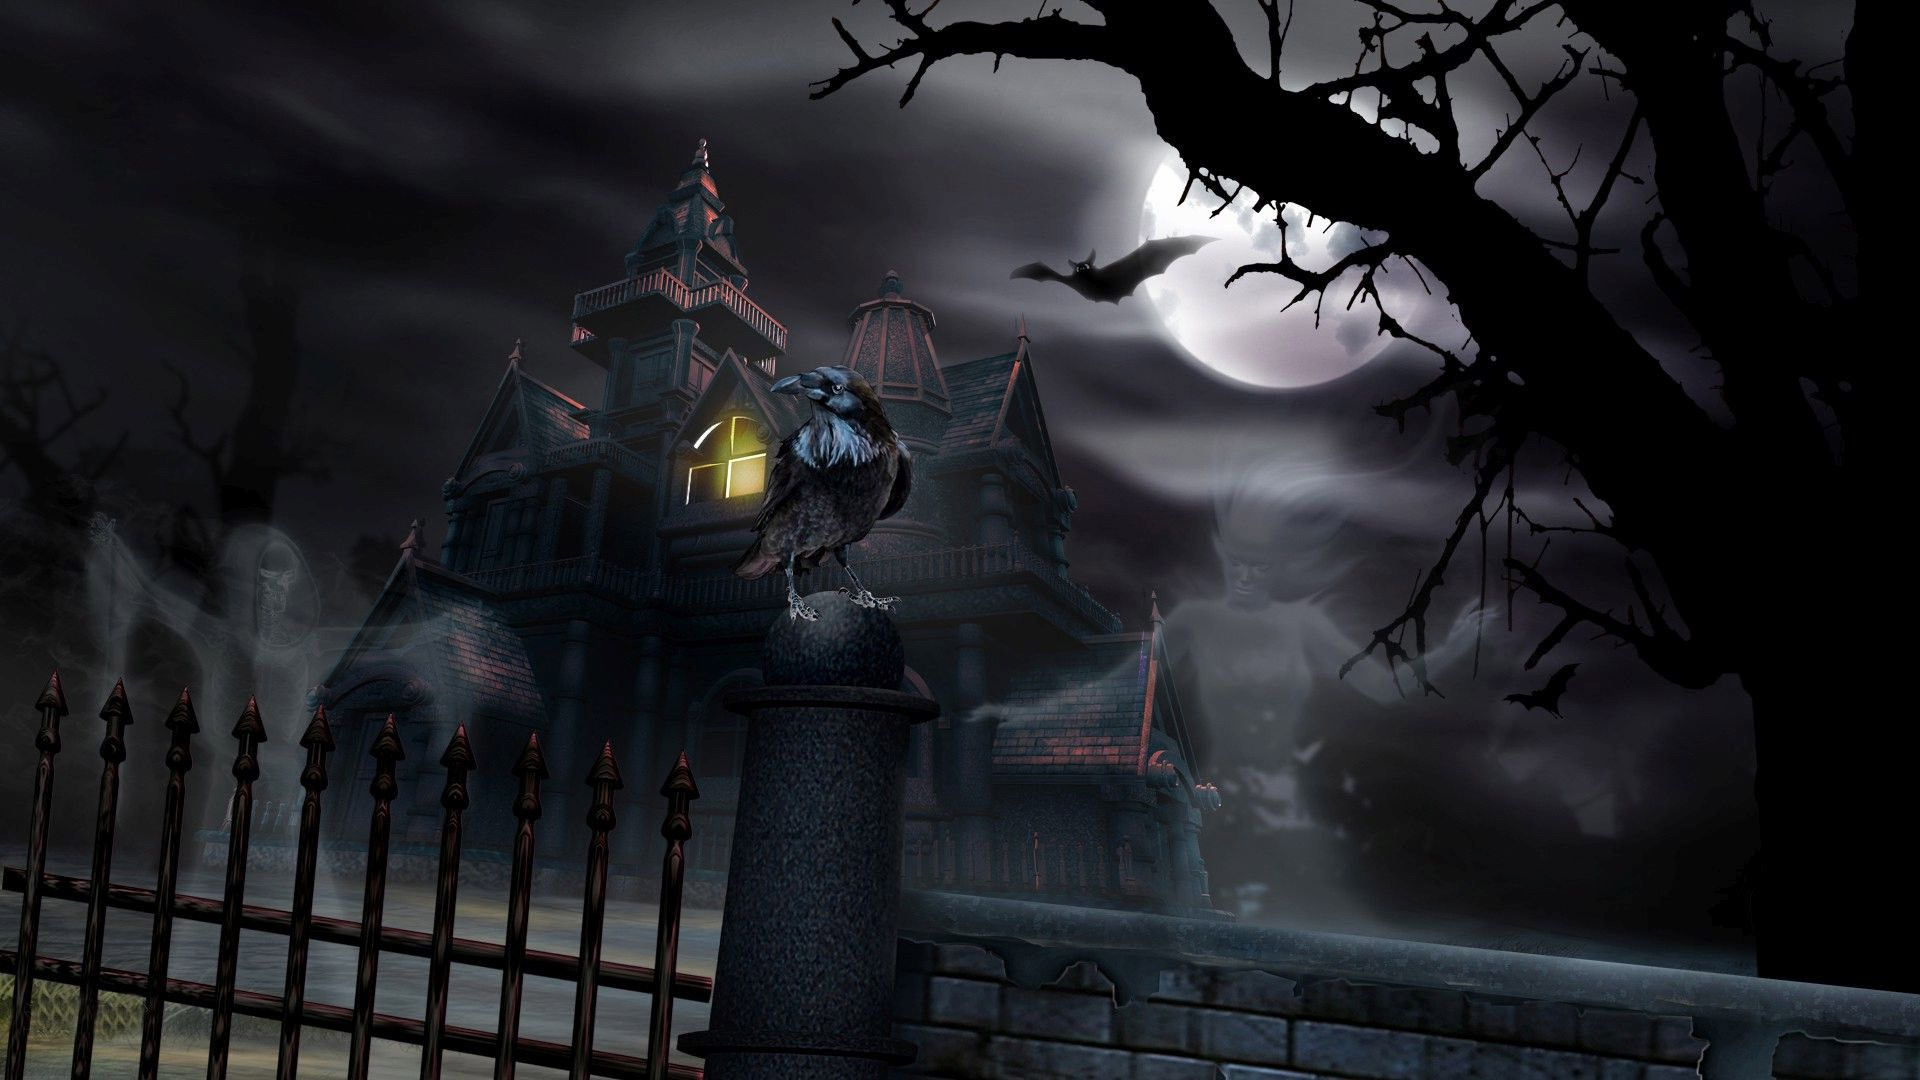 Haunted House Wallpapers 1920x1080